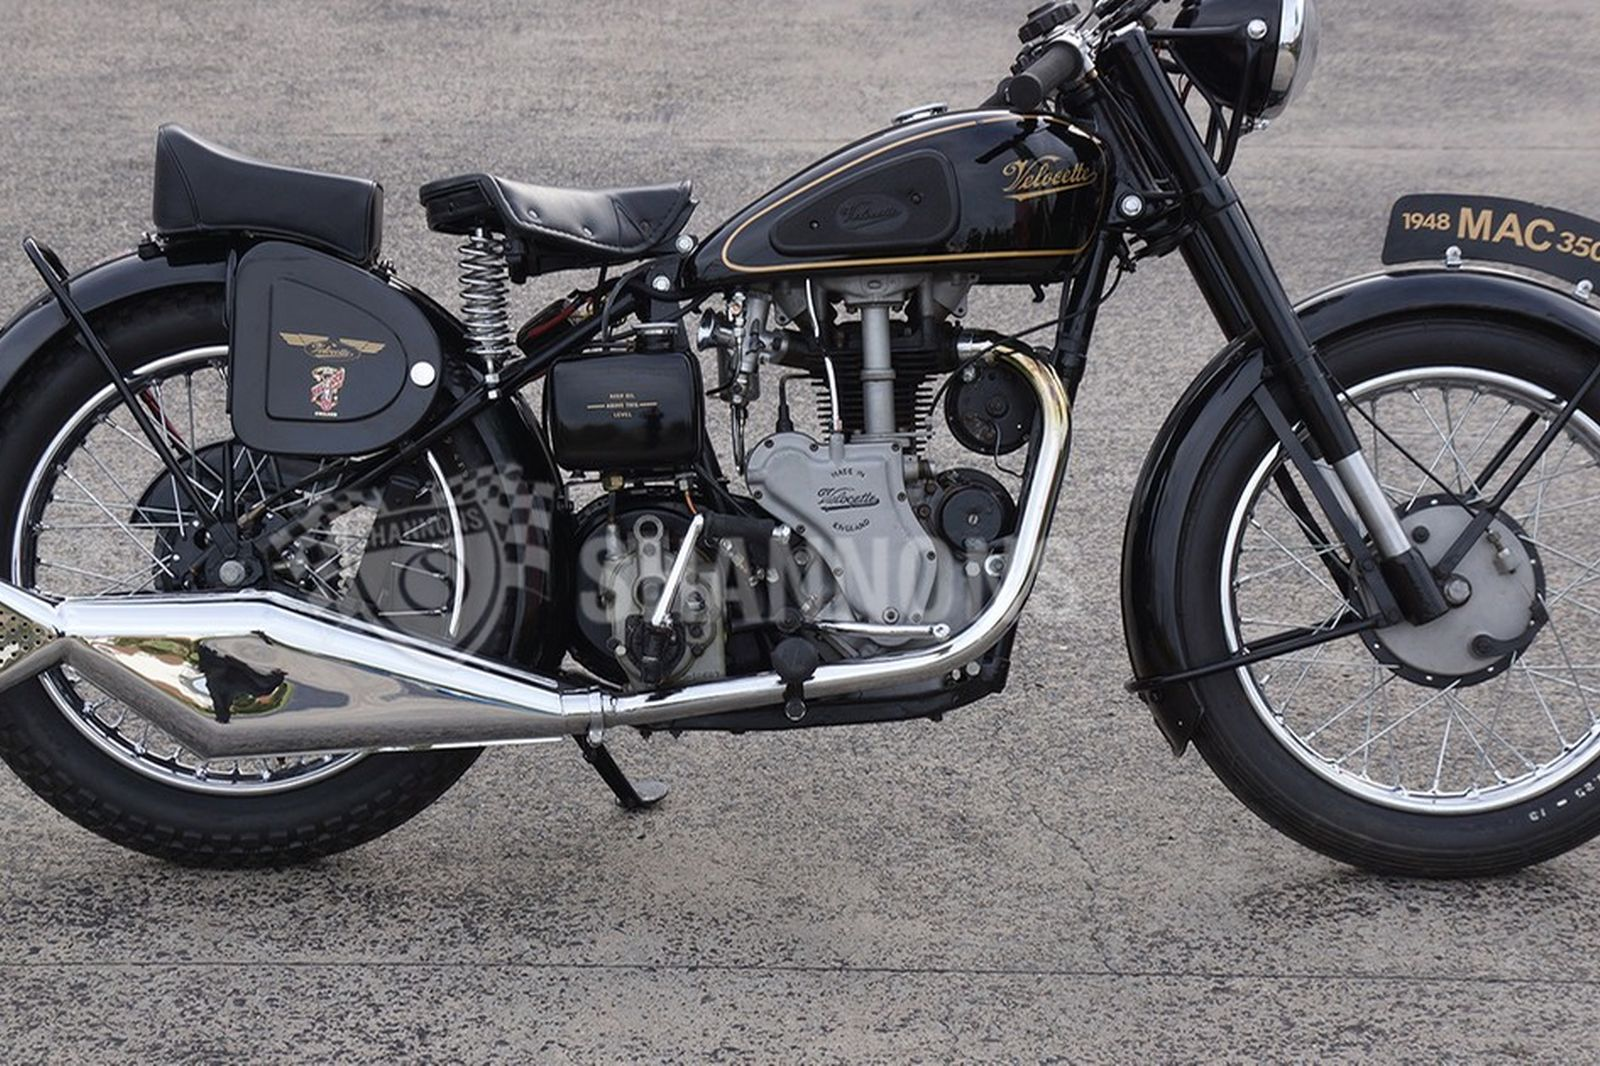 Velocette Mac 350cc Motorcycle